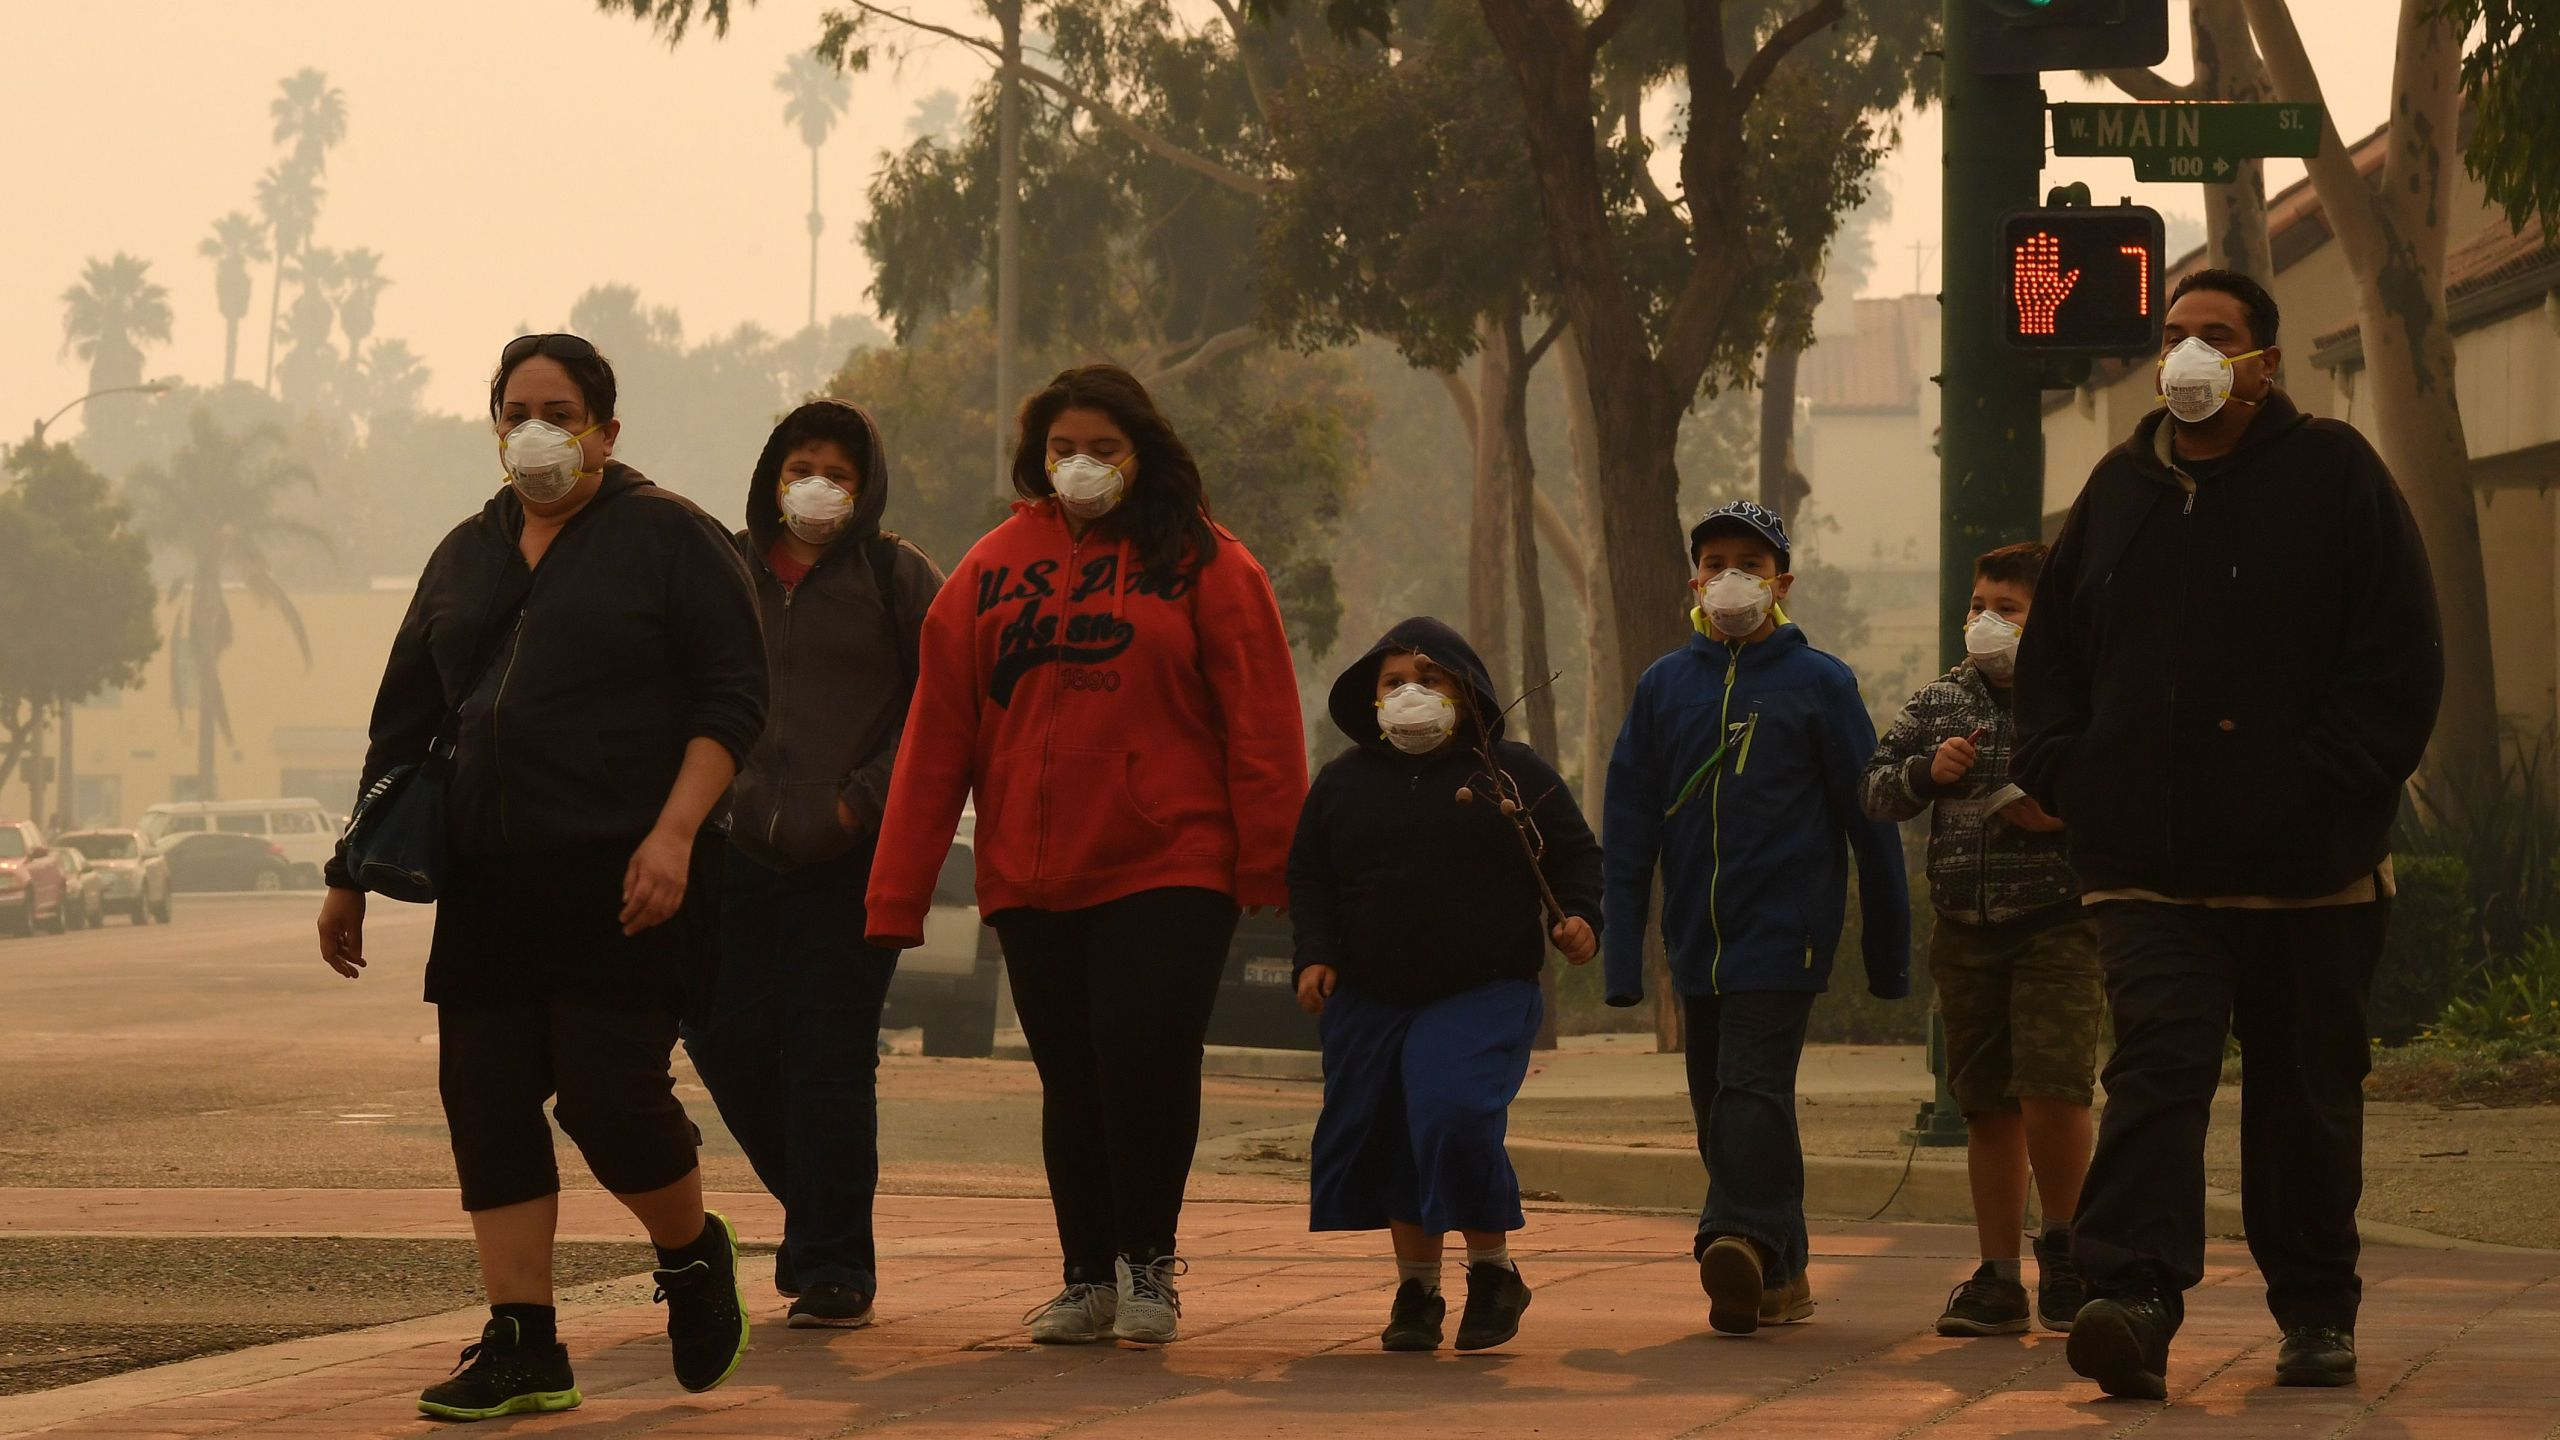 A family wears face masks as they walk through the smoke filled streets after the Thomas Fire swept through Ventura on Dec. 6, 2017.